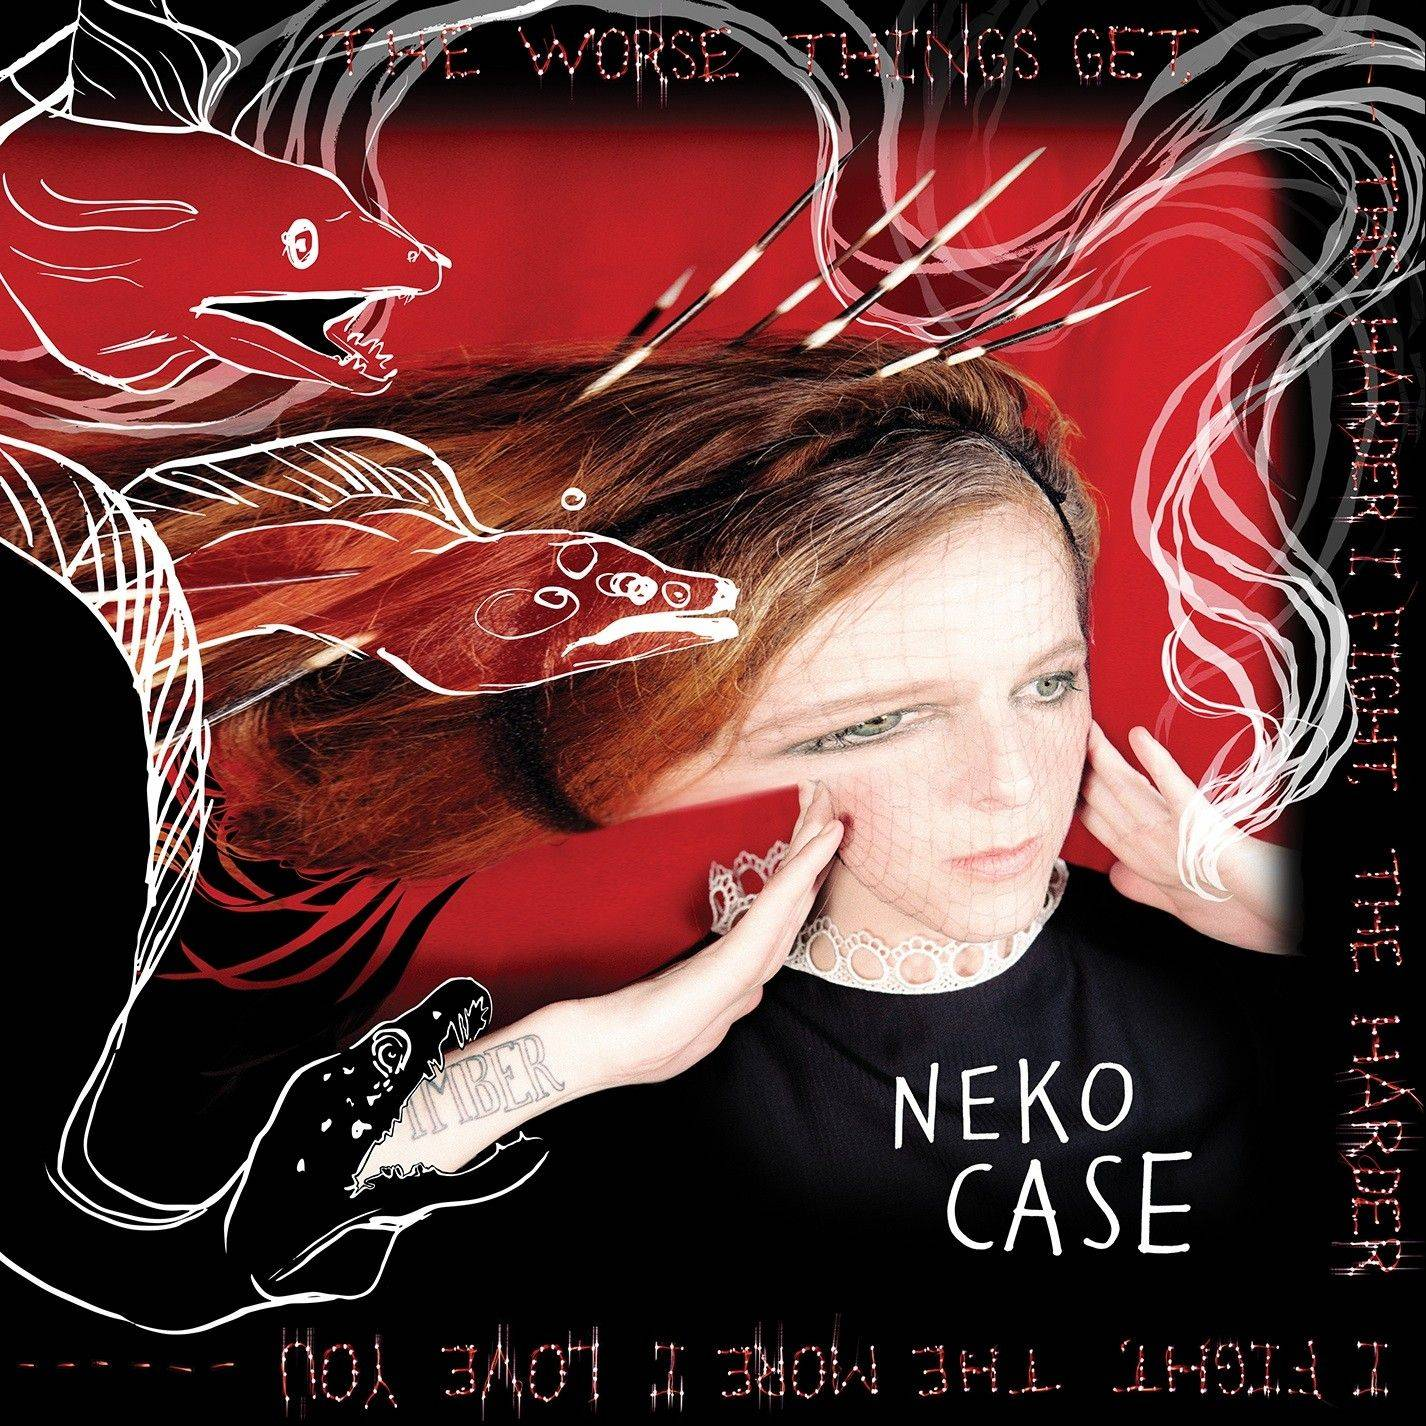 Slight songs mar Neko Case's latest